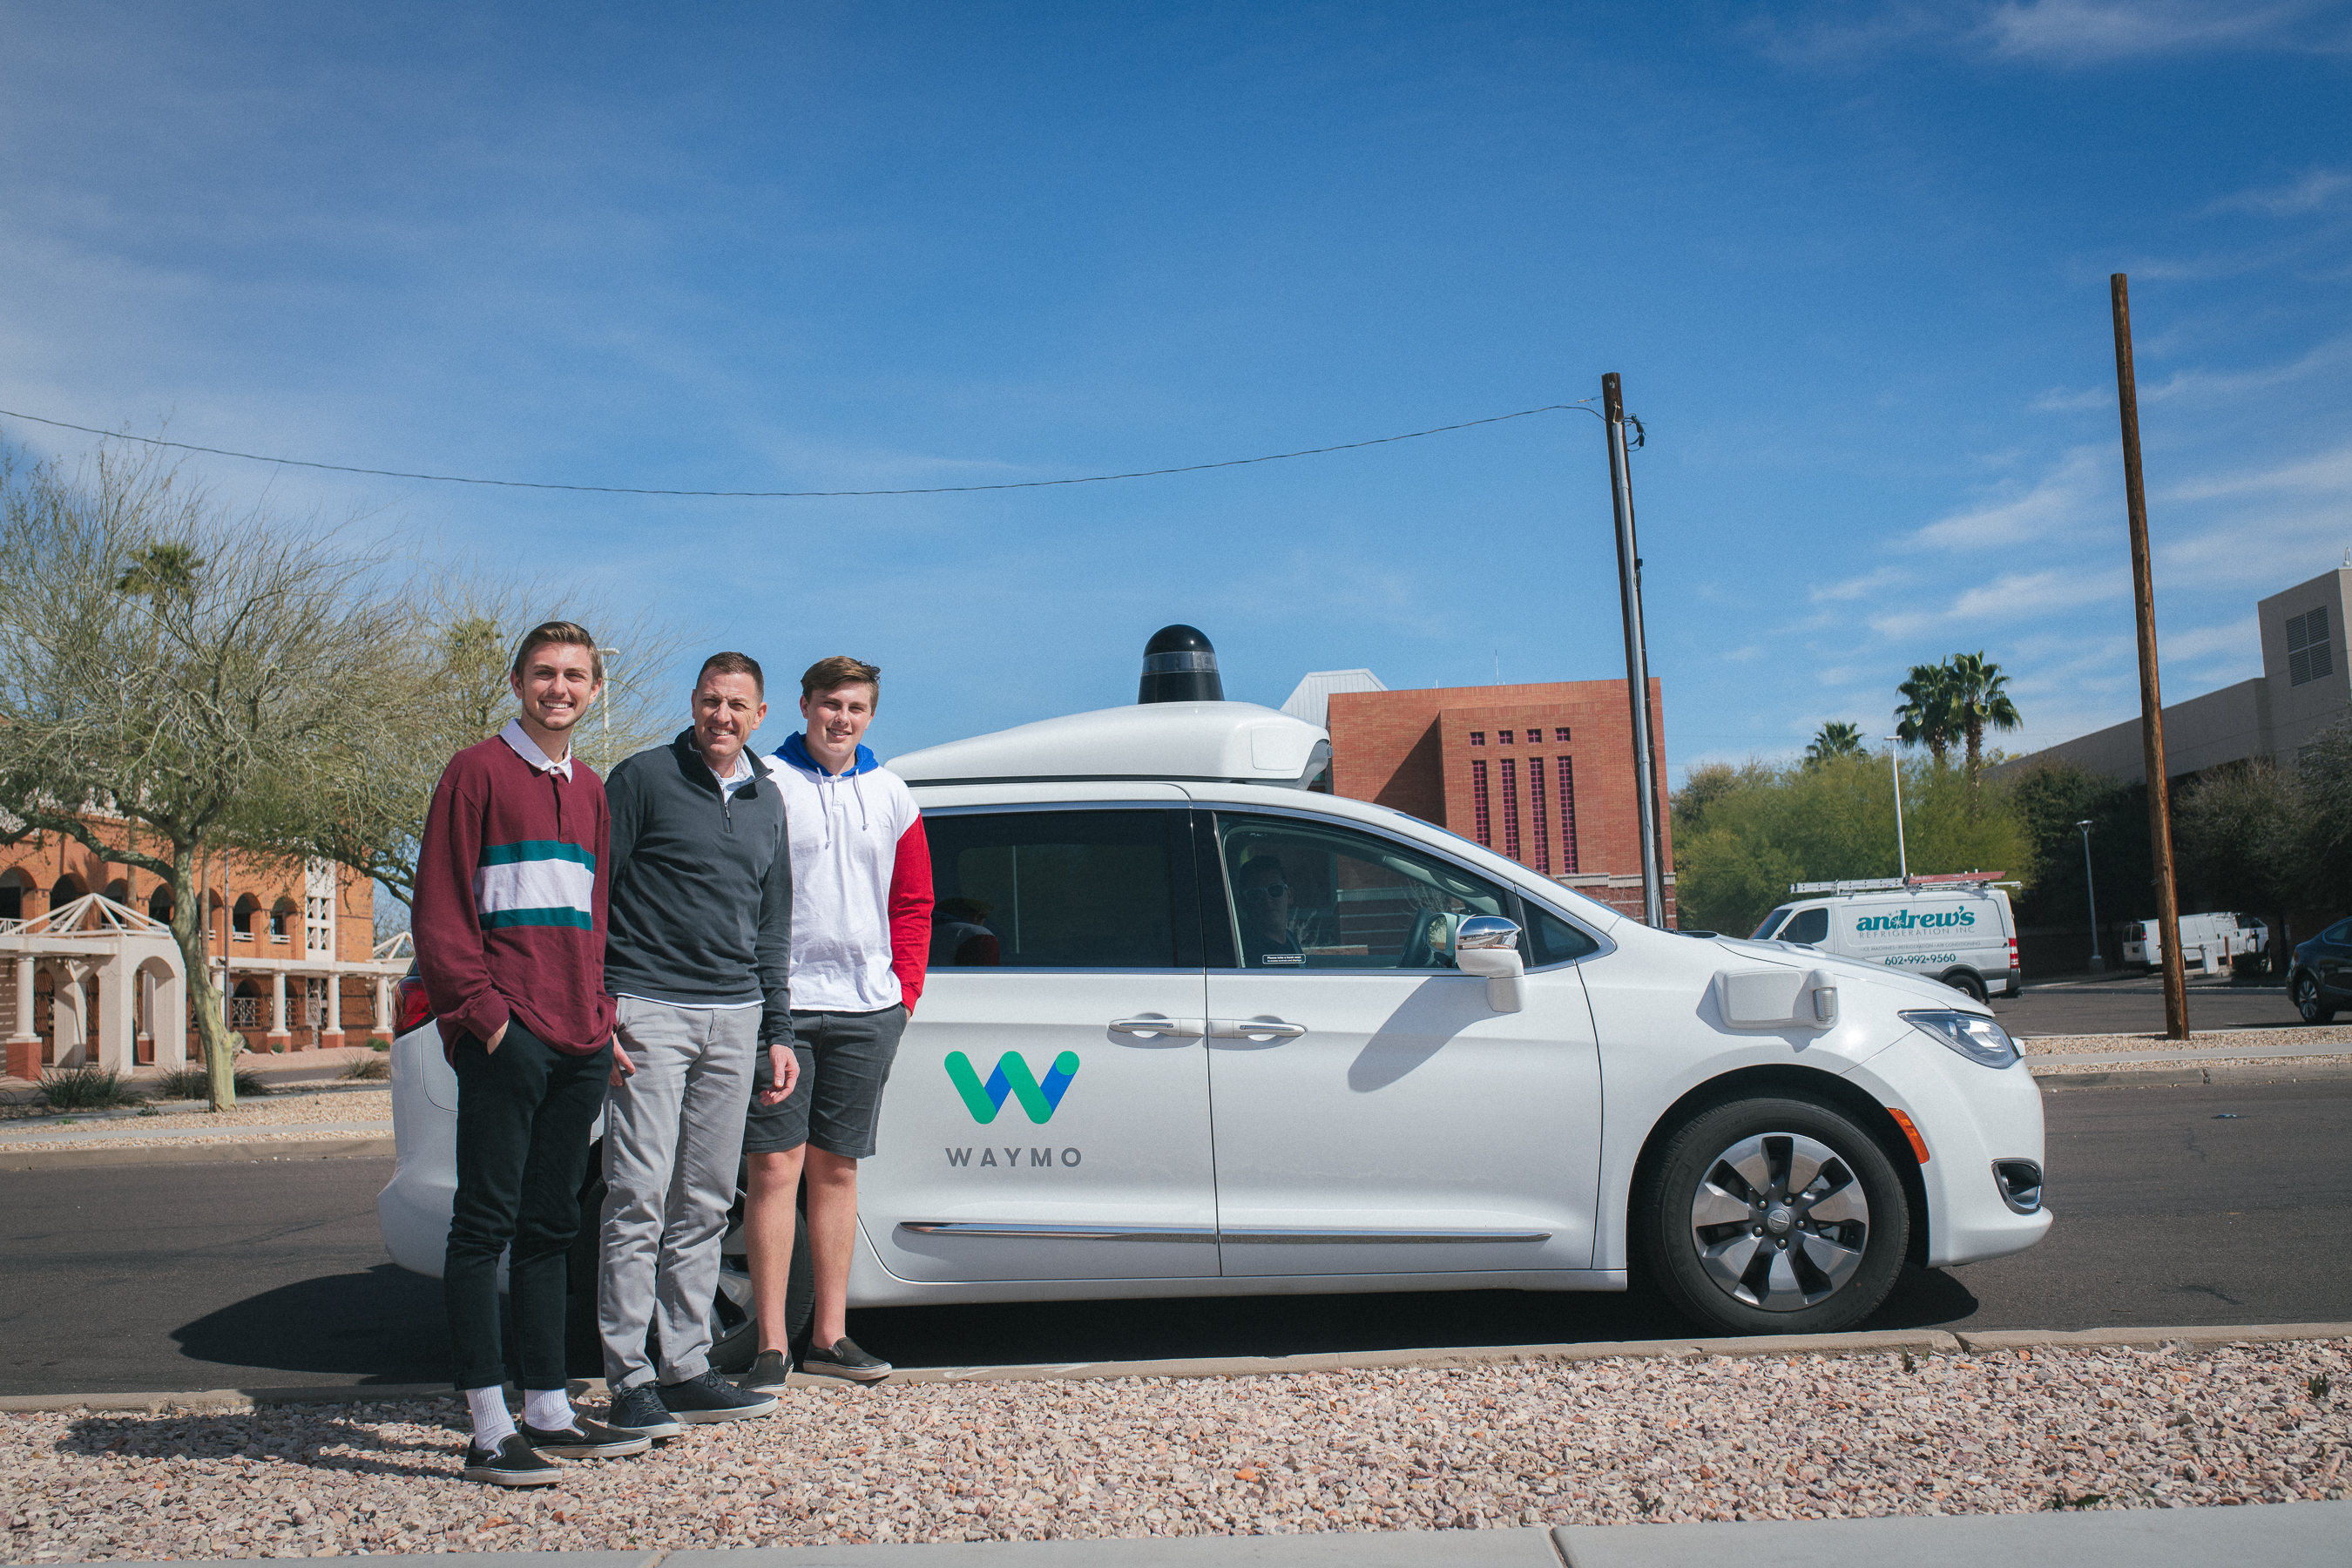 Denny Barney and sons with a Waymo vehicle